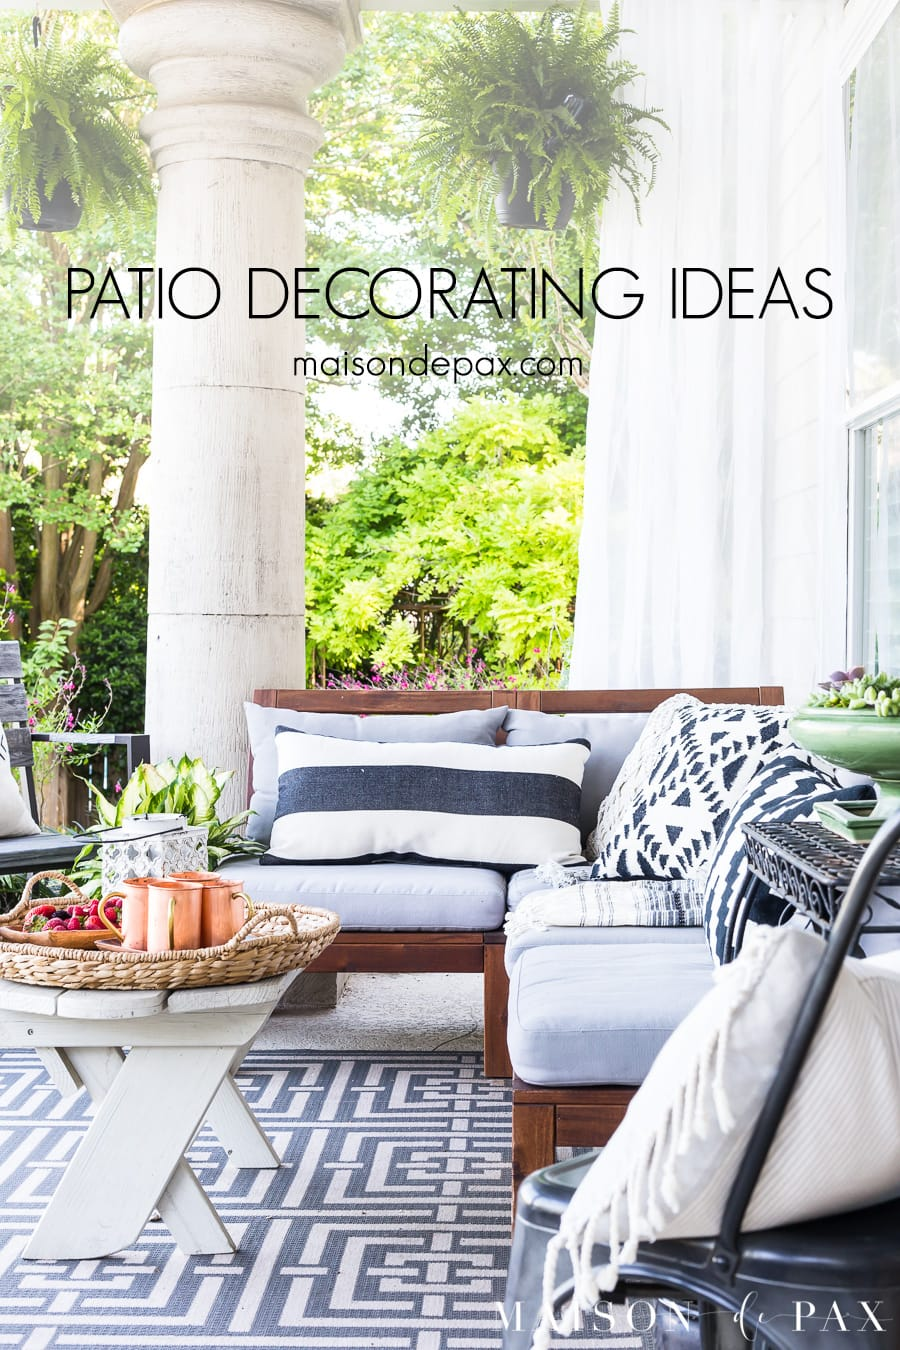 Simple ideas for a peaceful patio outdoor living space! #outdoorliving #patio #patiodecor #blackandwhite #succulents #backporch #outdoorentertaining